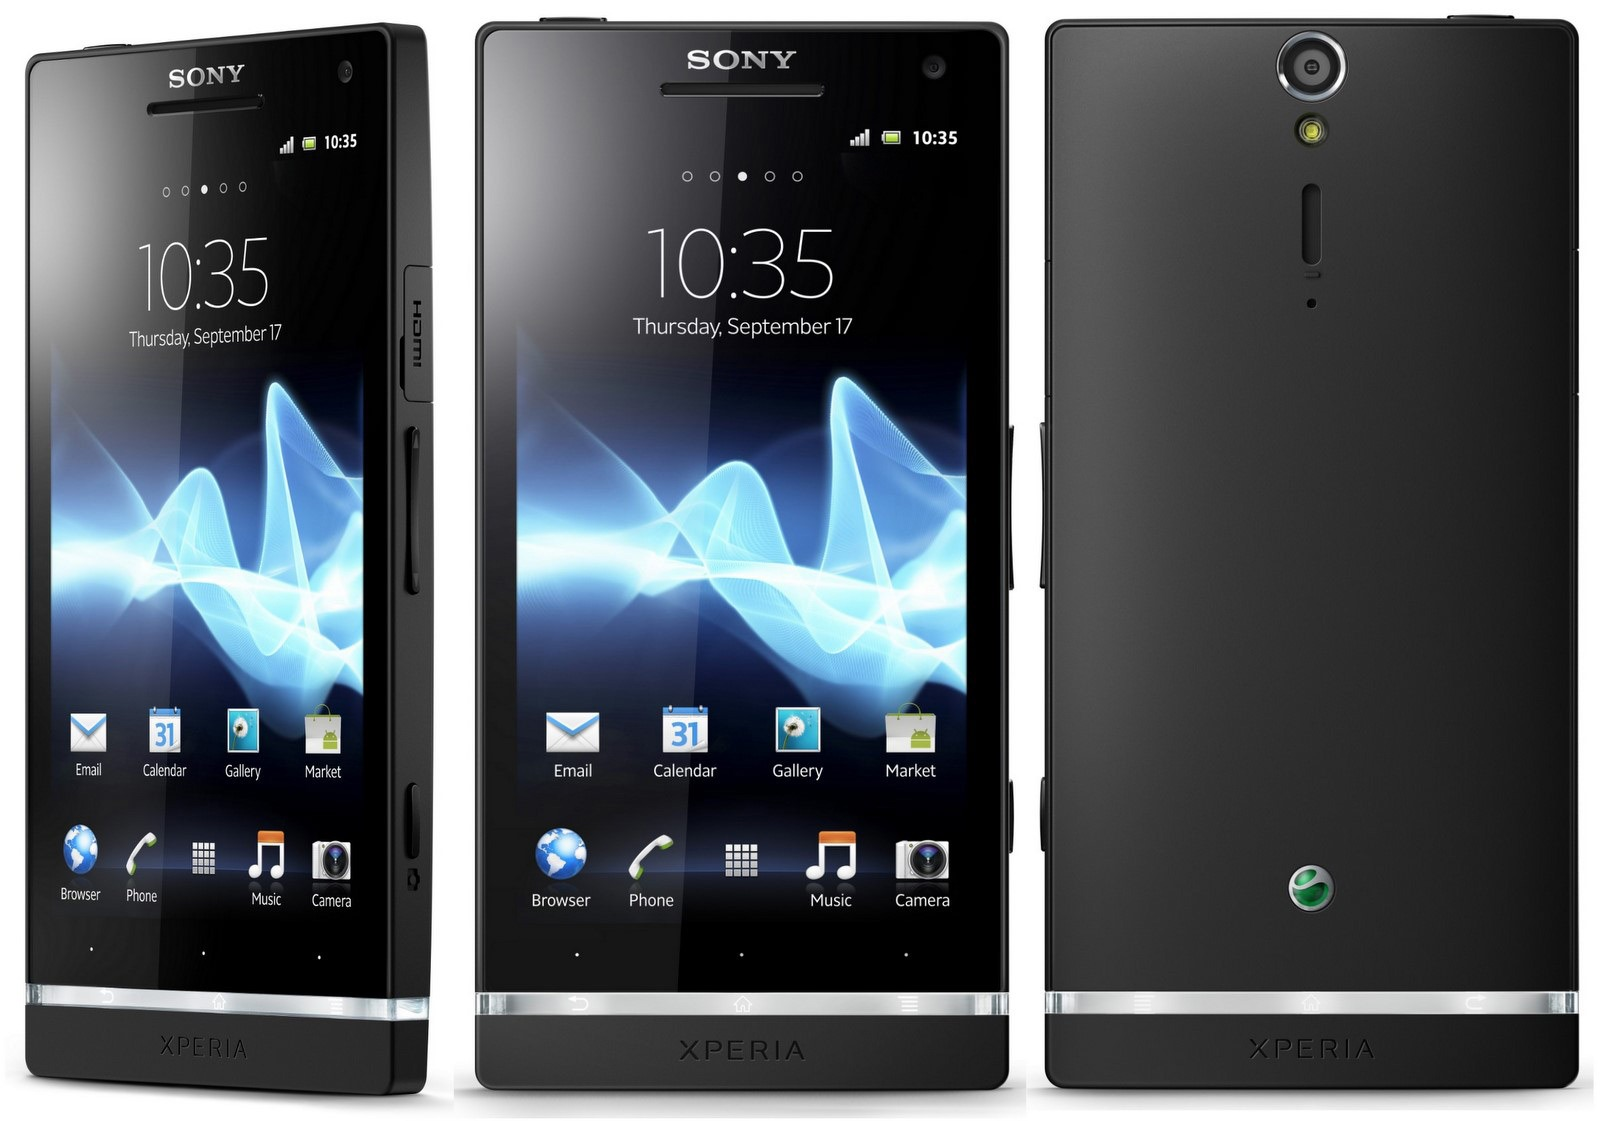 Watch the Sony Xperia Z5 Premium's 4K screen shrug off a splashing video. Image Credit: Android Advices